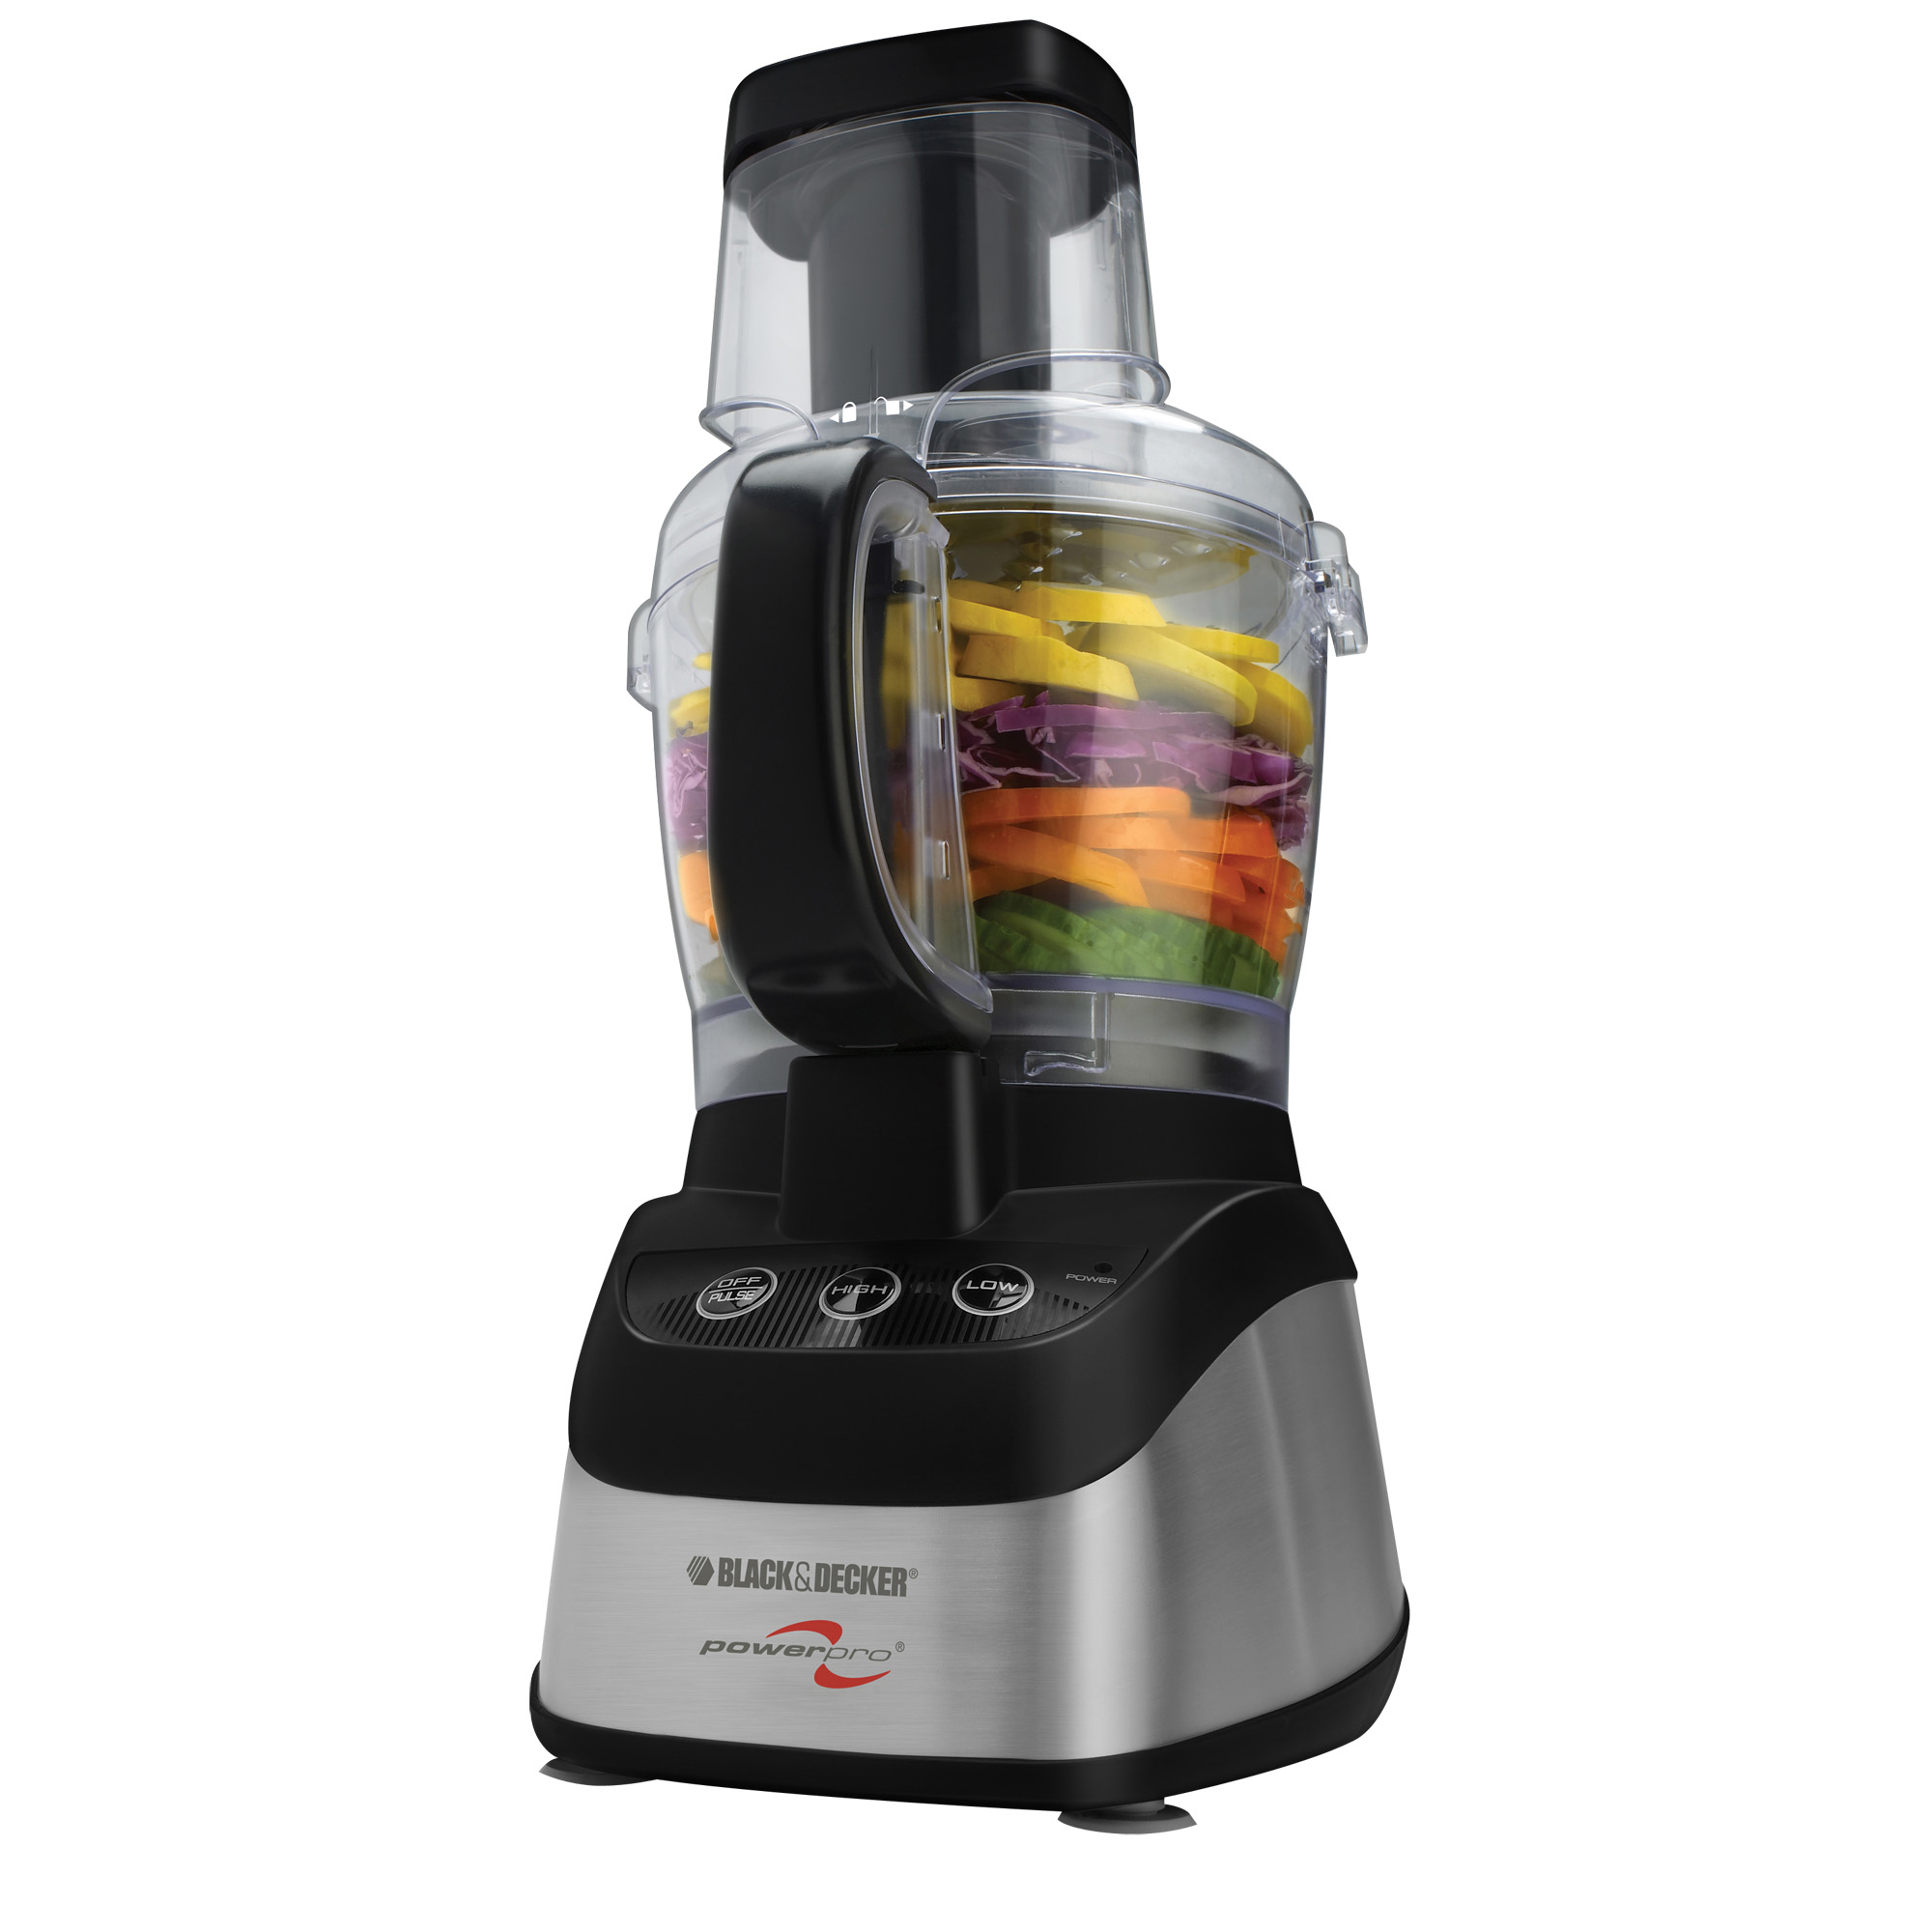 Black And Decker Power Pro Food Processor And Blender